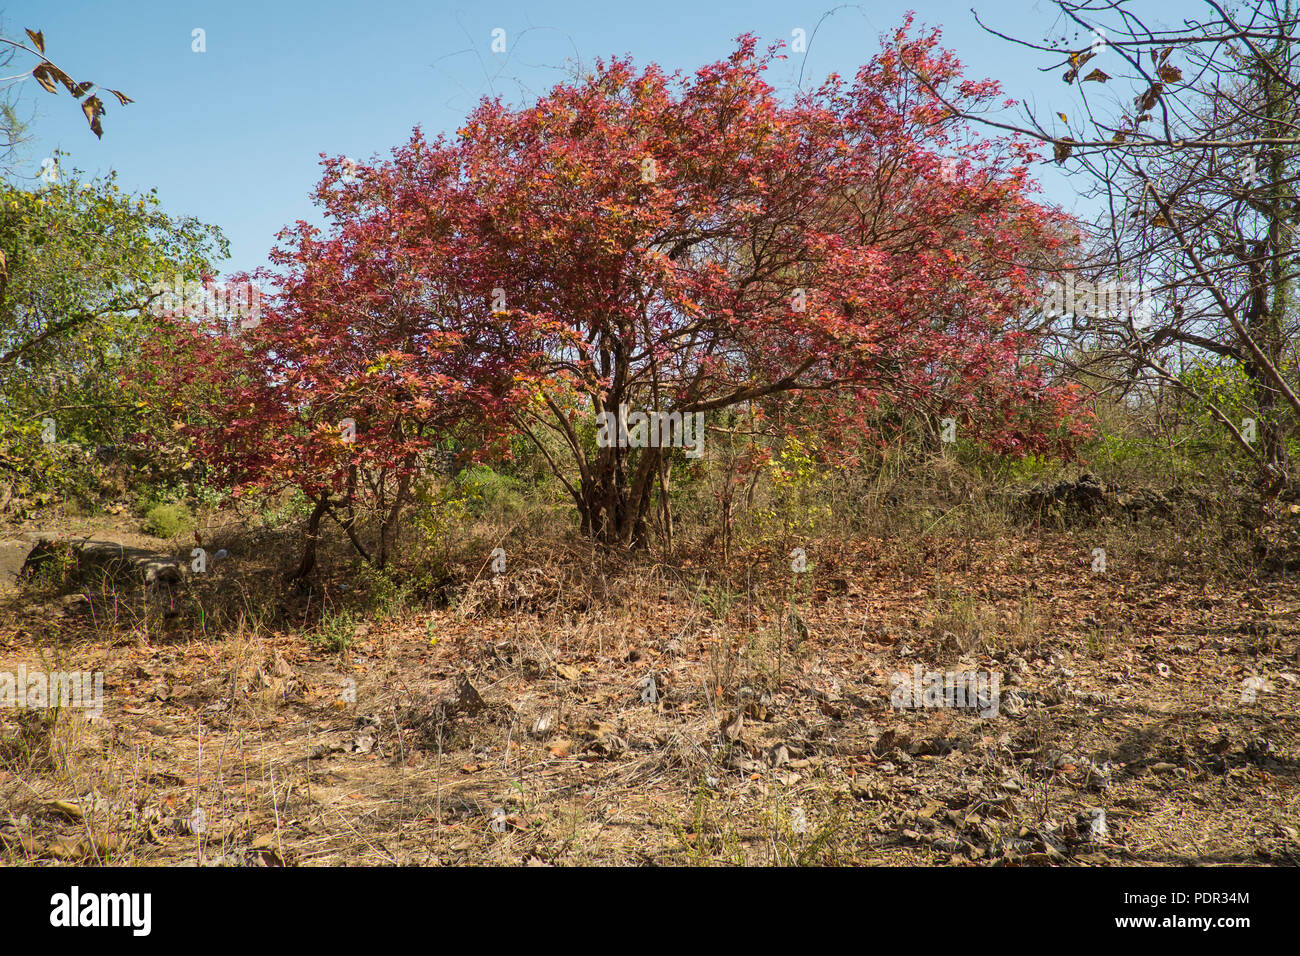 As spring comes to an end, a tree has shed its chlorophyll, making its leaves red. Soon these leaves will be shed to survive the hot dry summers. - Stock Image